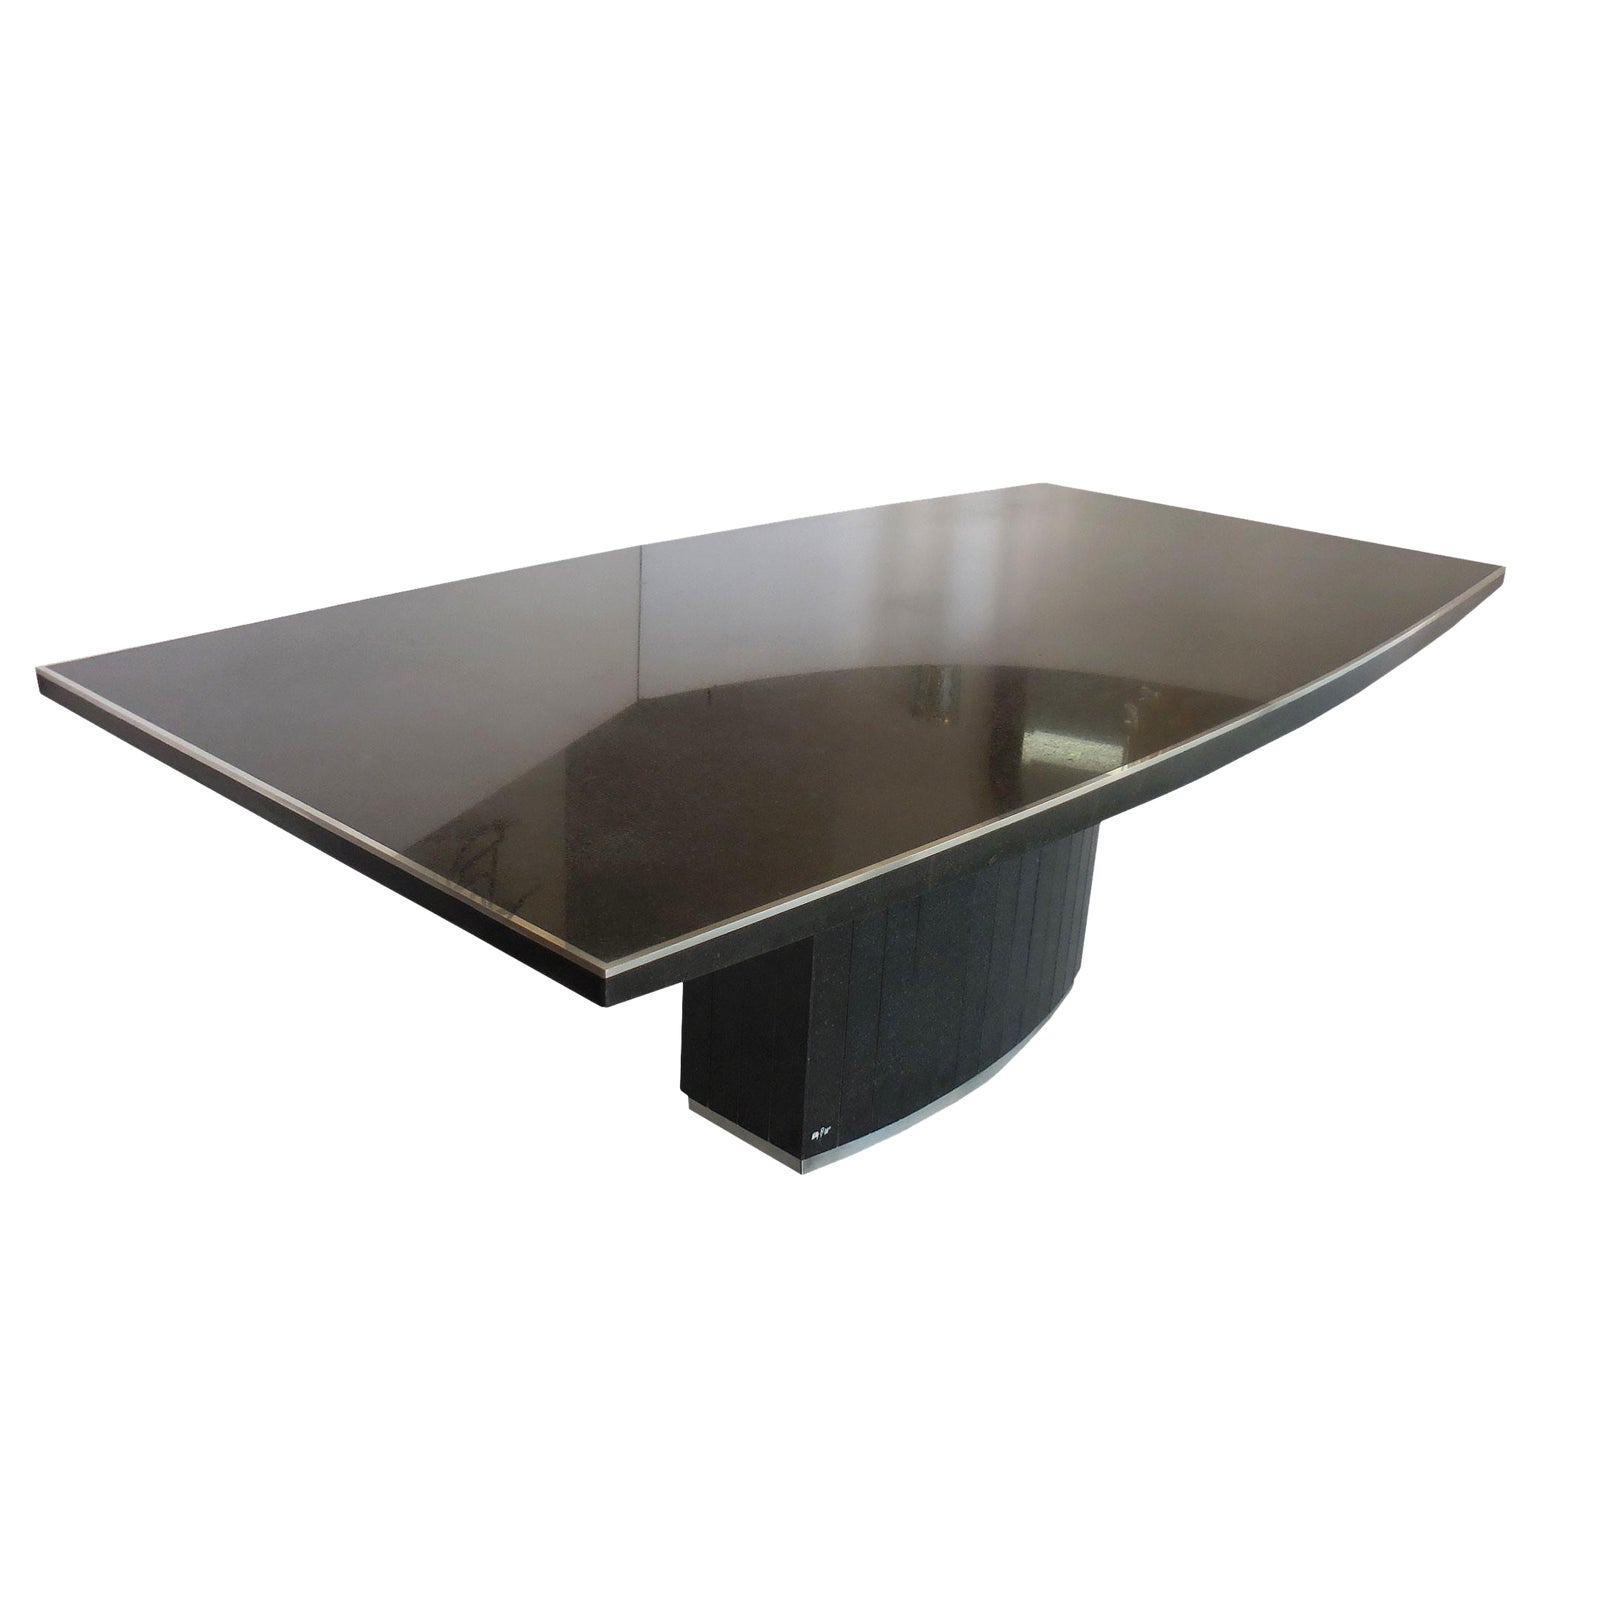 Exquisite Rare Black Granite And Stainless Steel Dining Table By